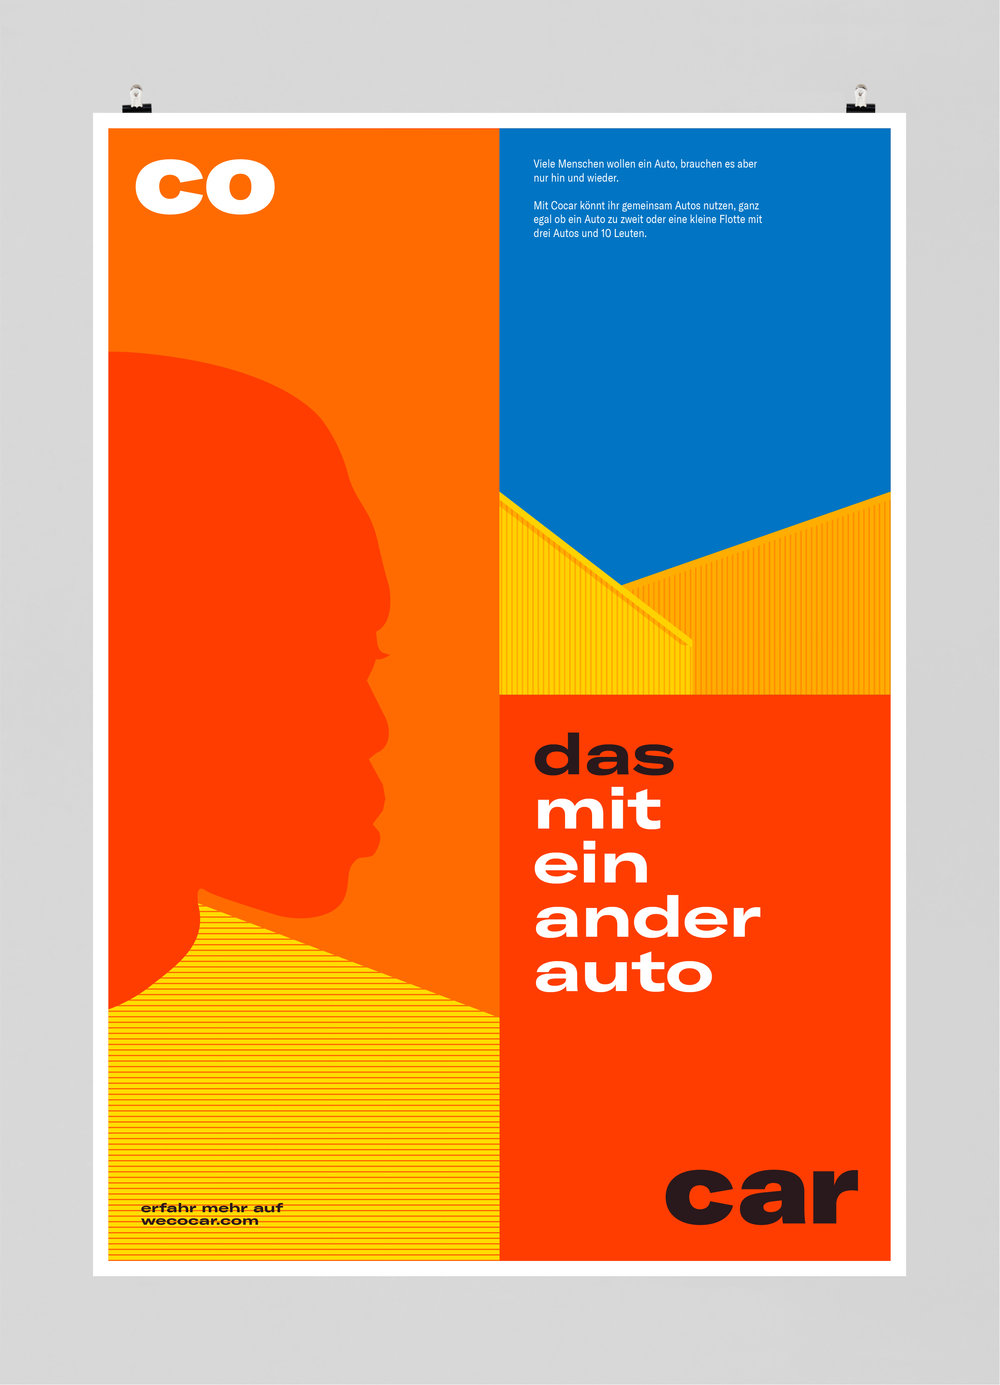 Cocar_Posters with backdrop-02.jpg